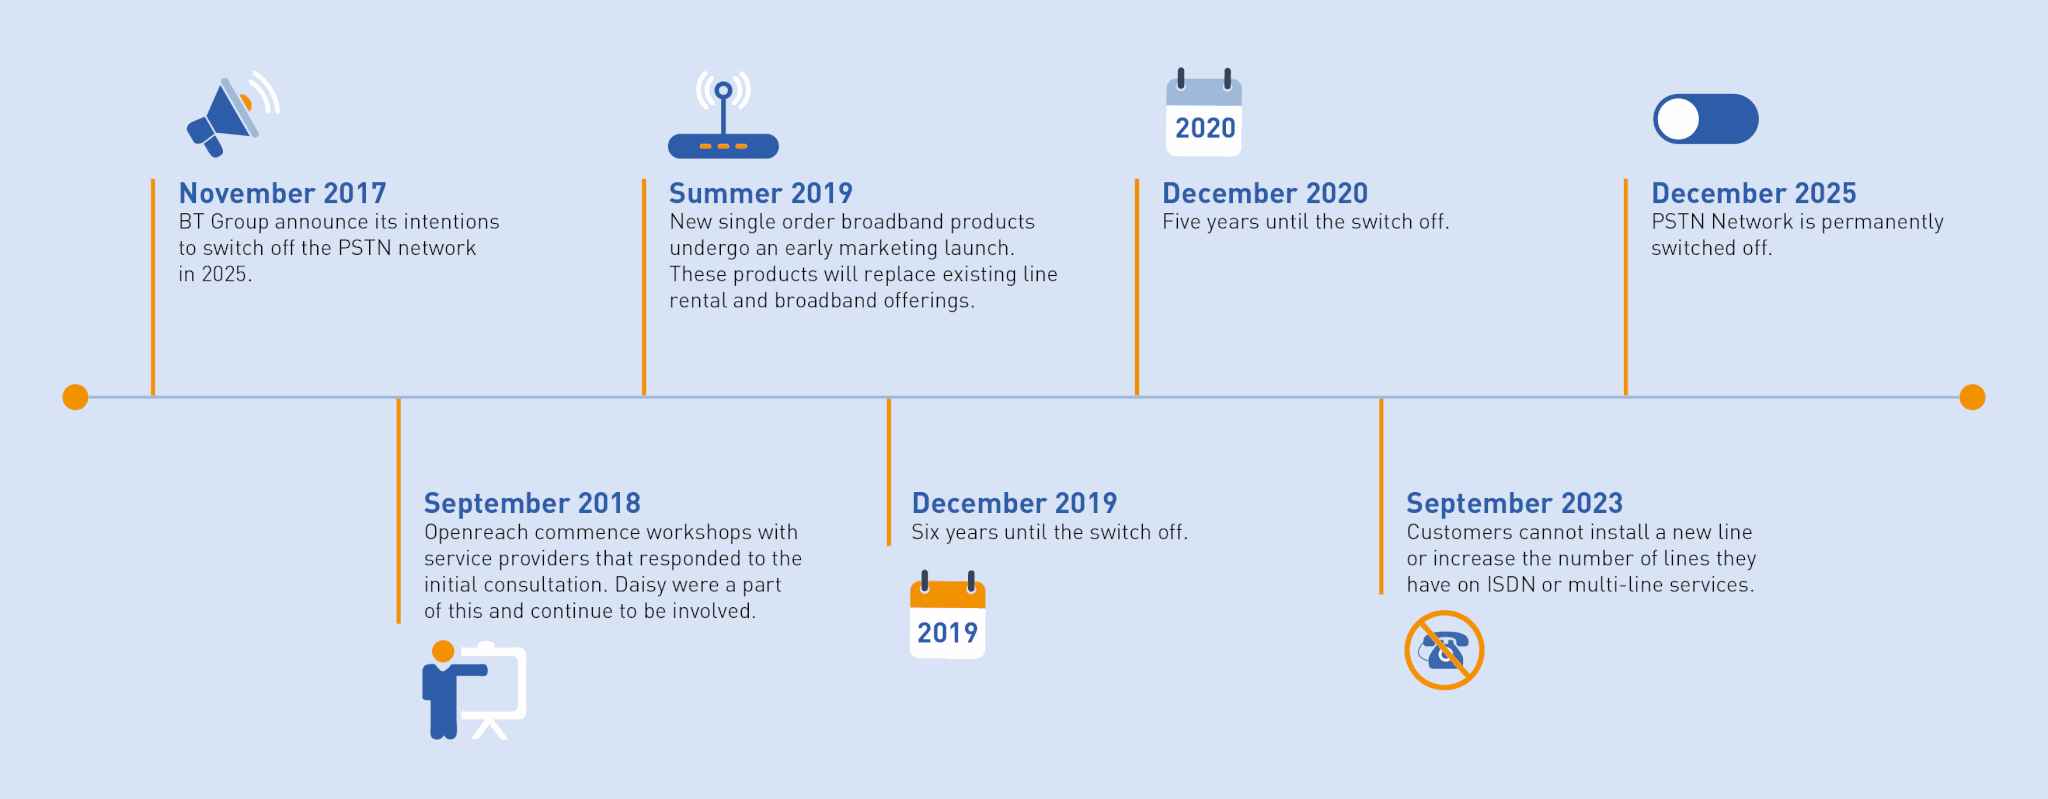 PSTN, Answers to your questions about the PSTN 2025 Switch Off